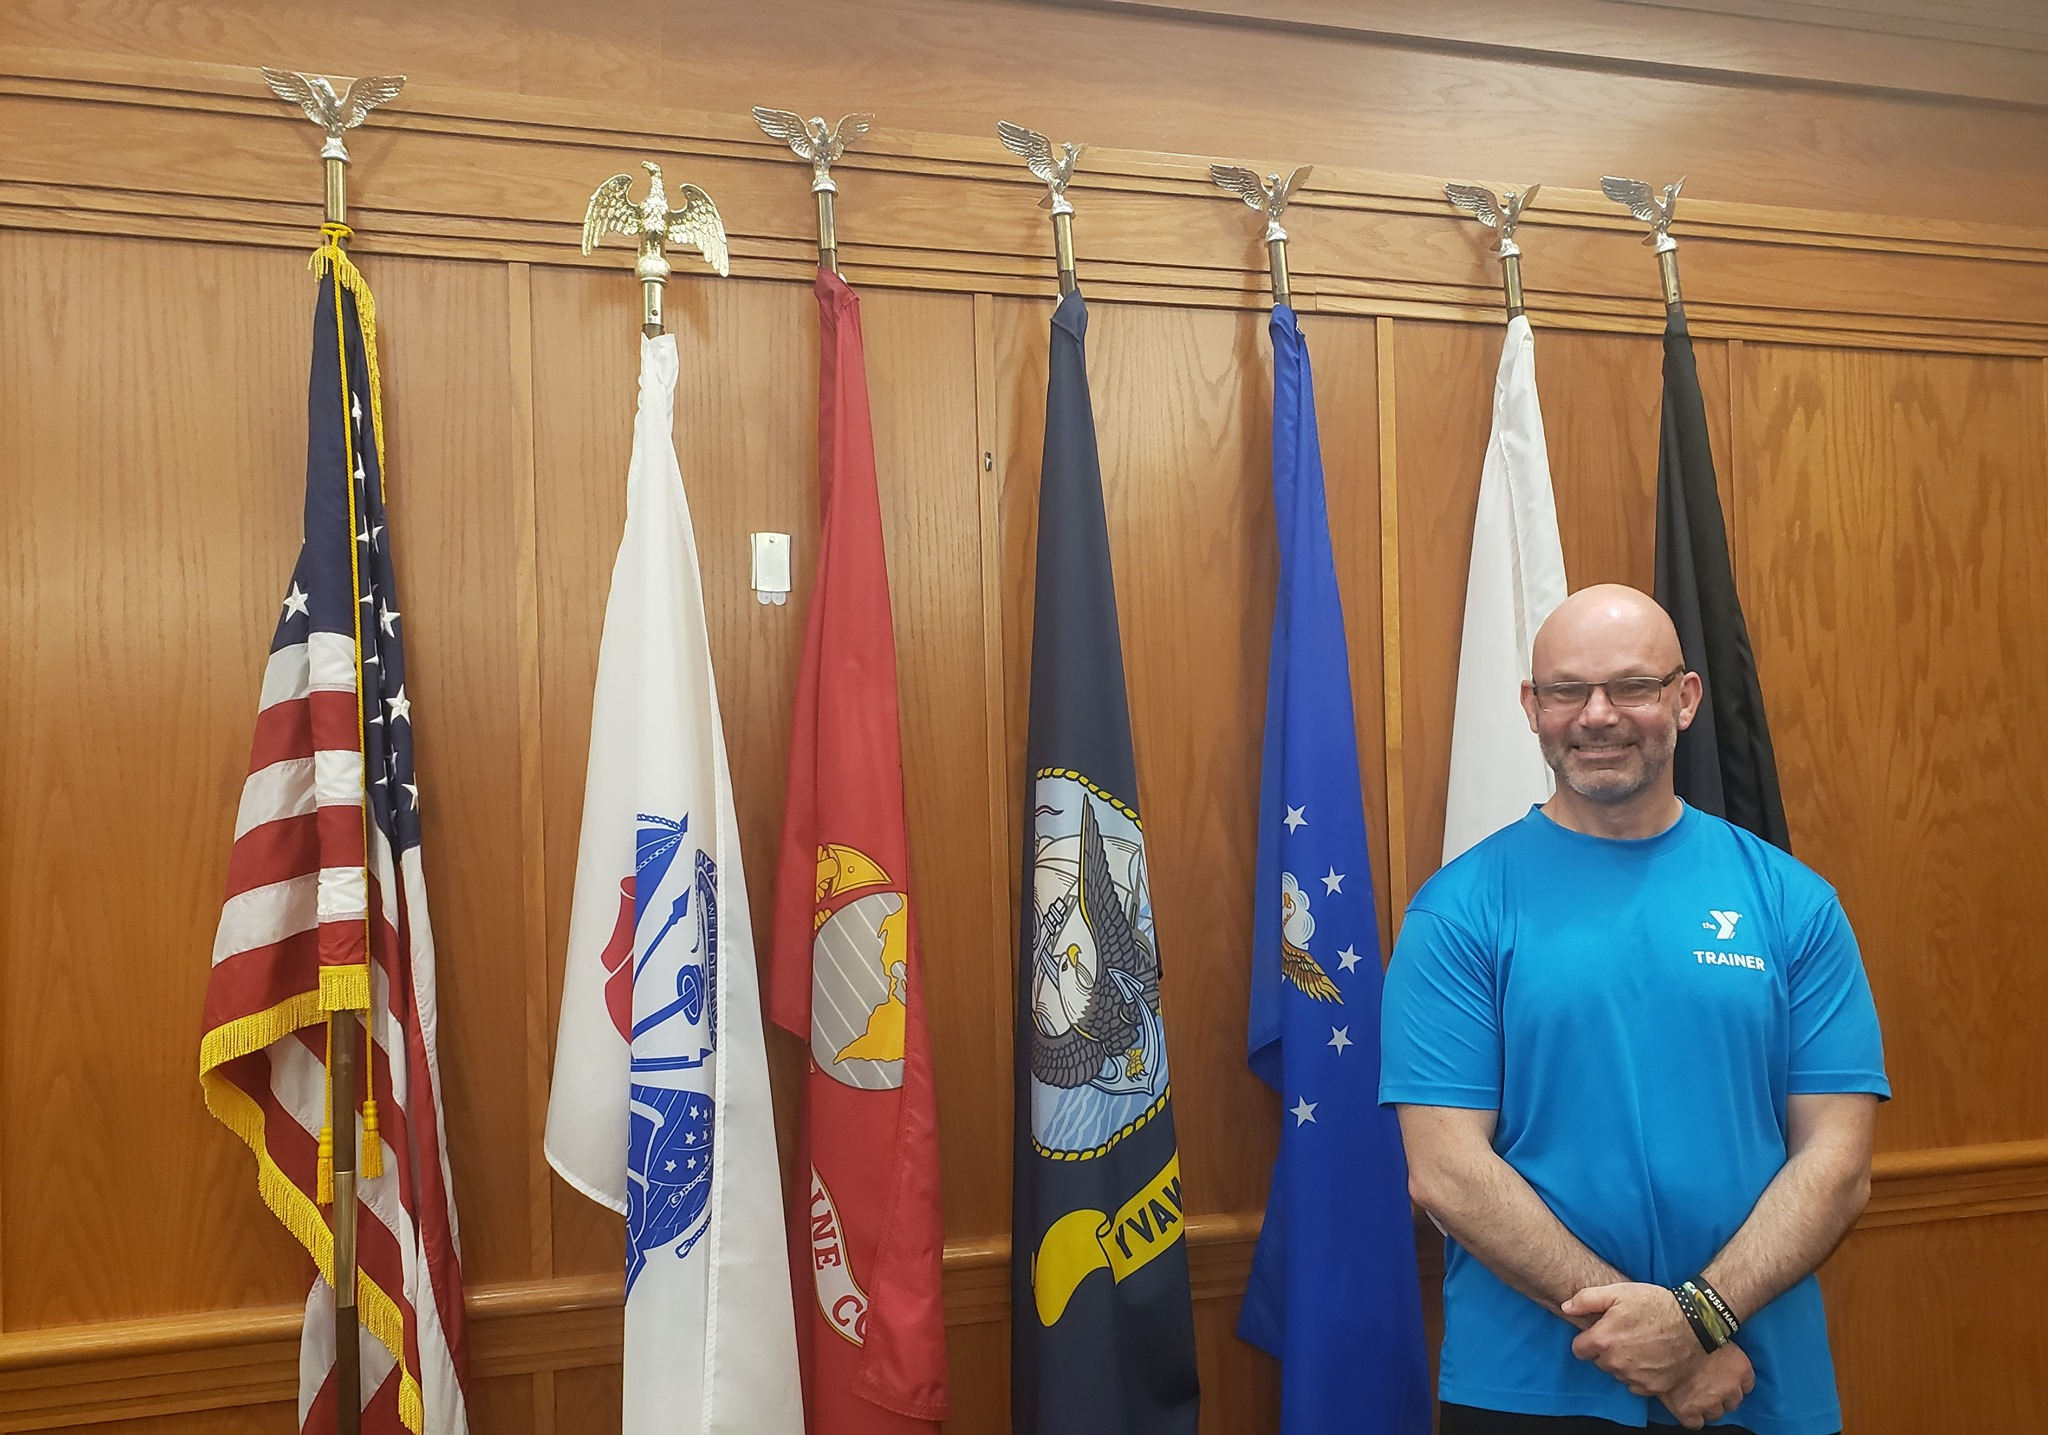 Mike Morang : Mike Morang, a former Senior Medical Advisor in the Navy, is now an ACE certified personal trainer who leads Countyside YMCA's newest program, Veterans Connect.